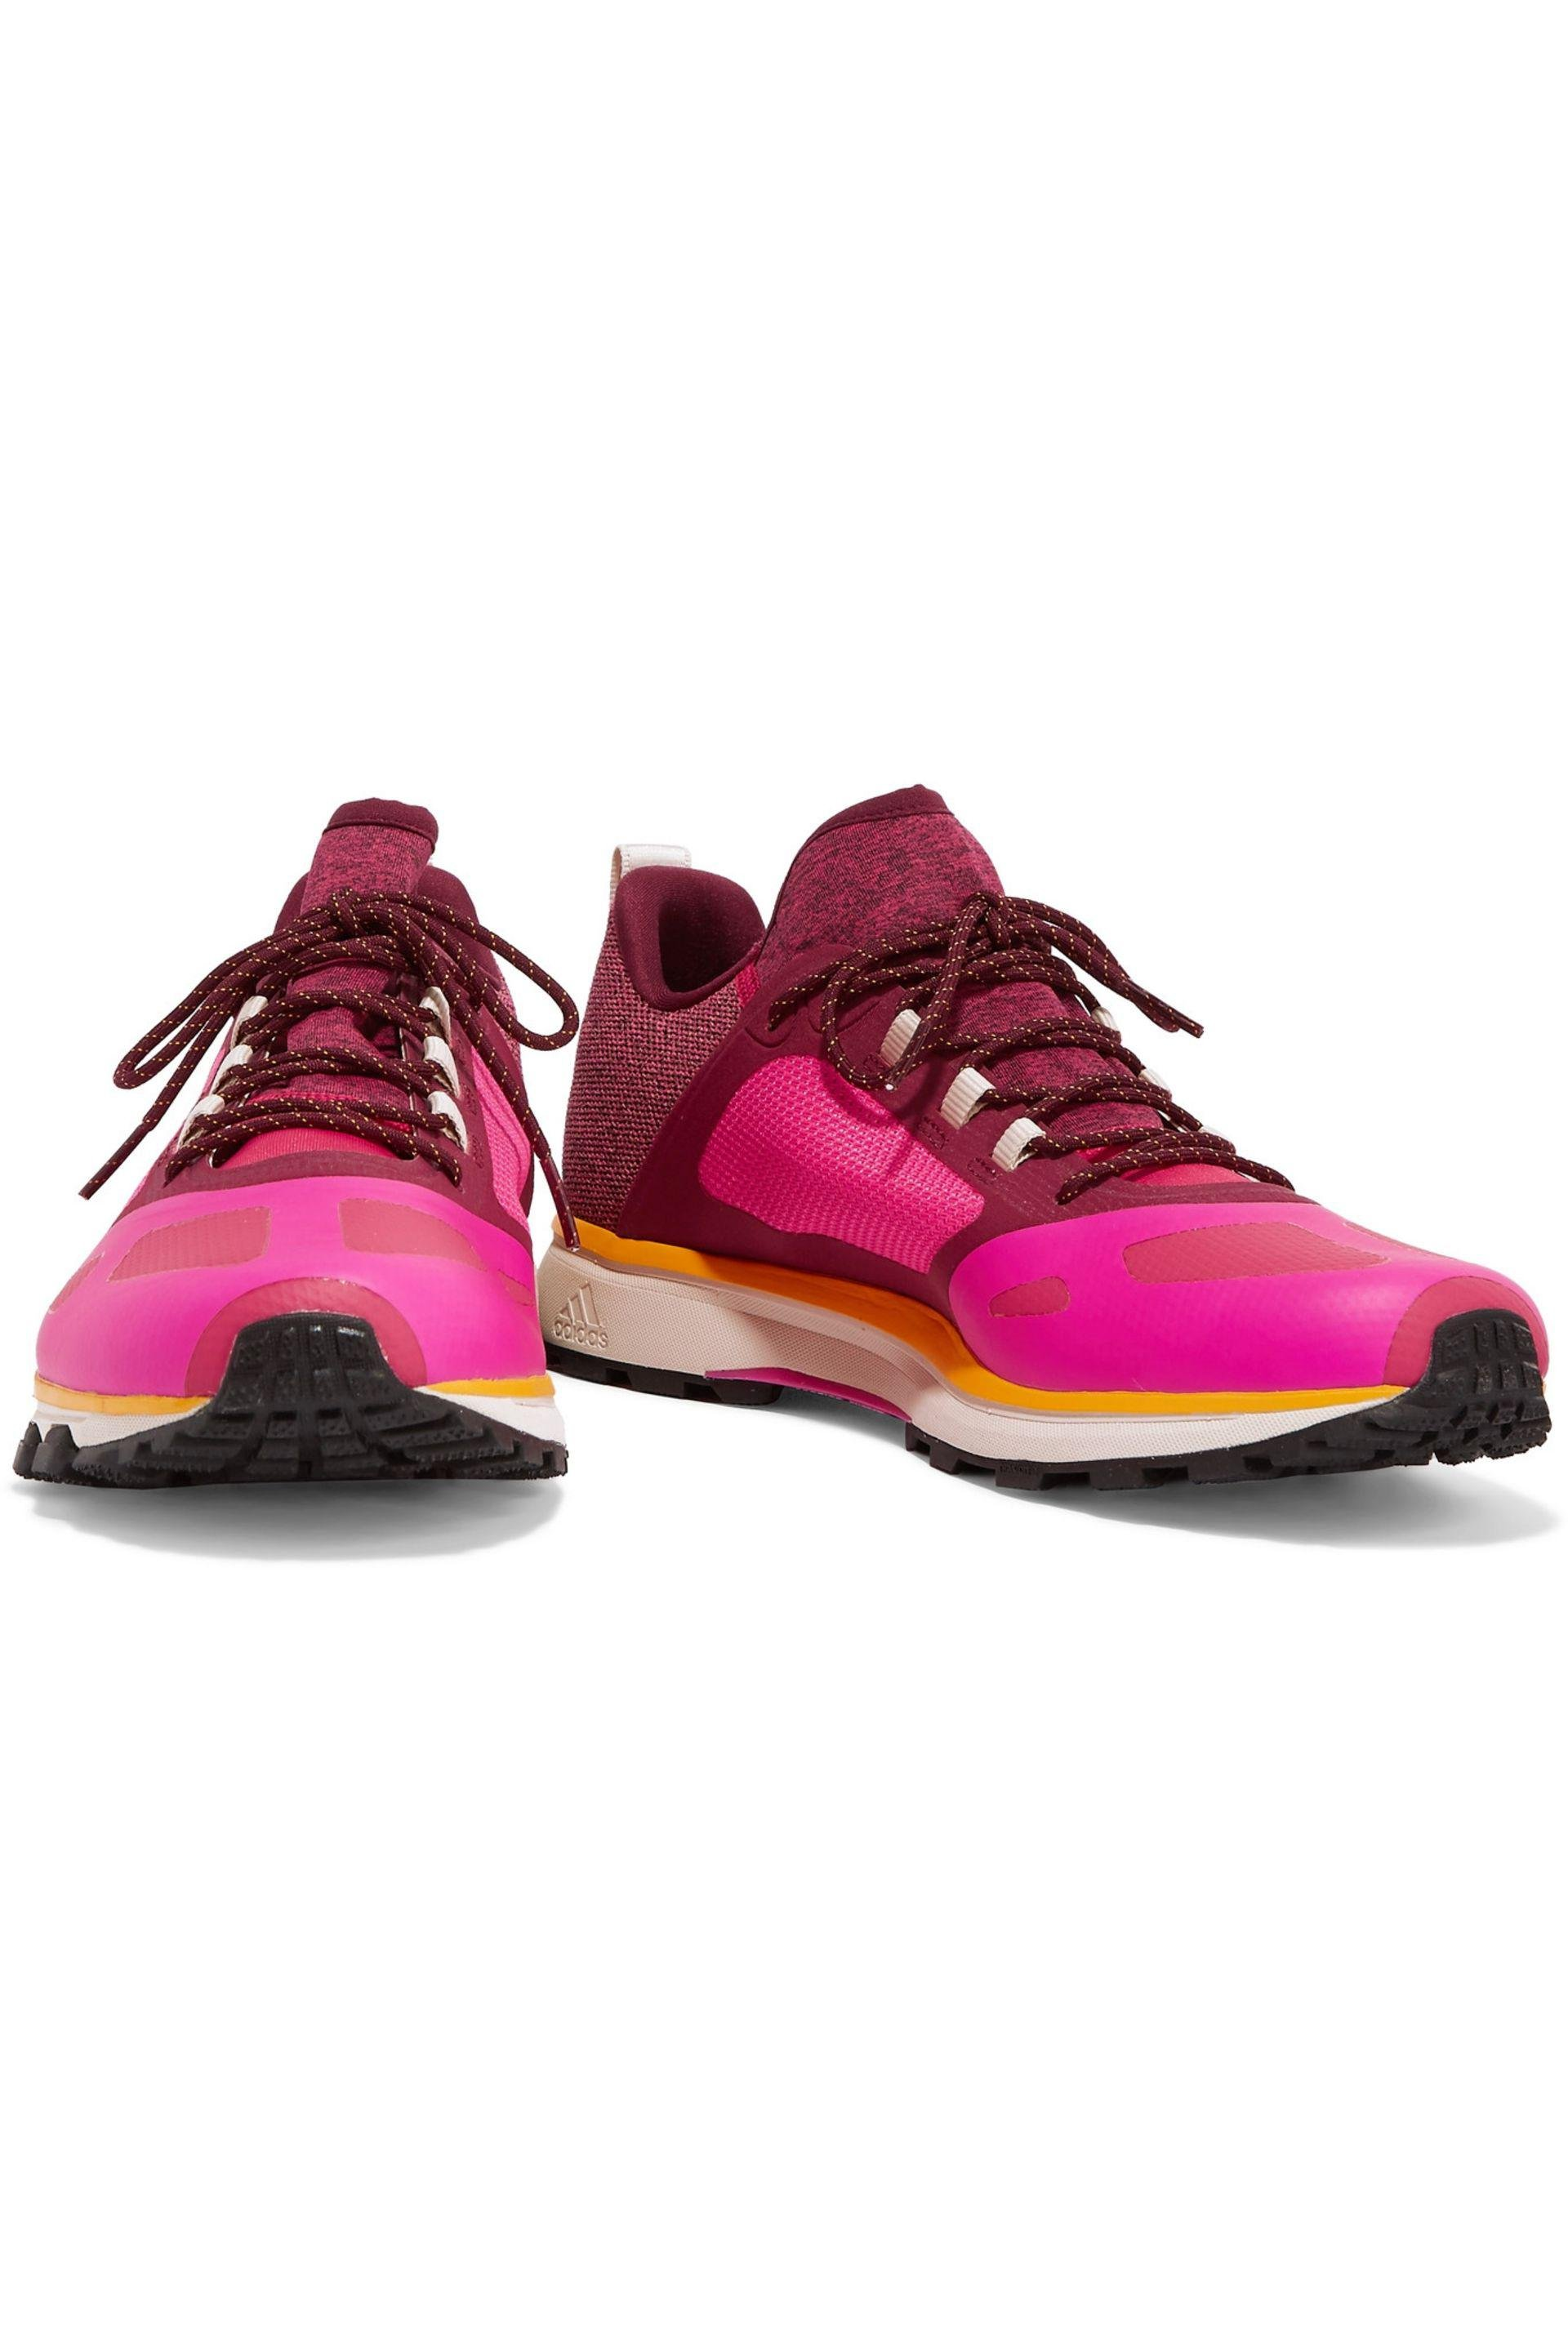 adidas By Stella McCartney Rubber Adizero Xt Running Sneaker in Bright Pink (Pink)